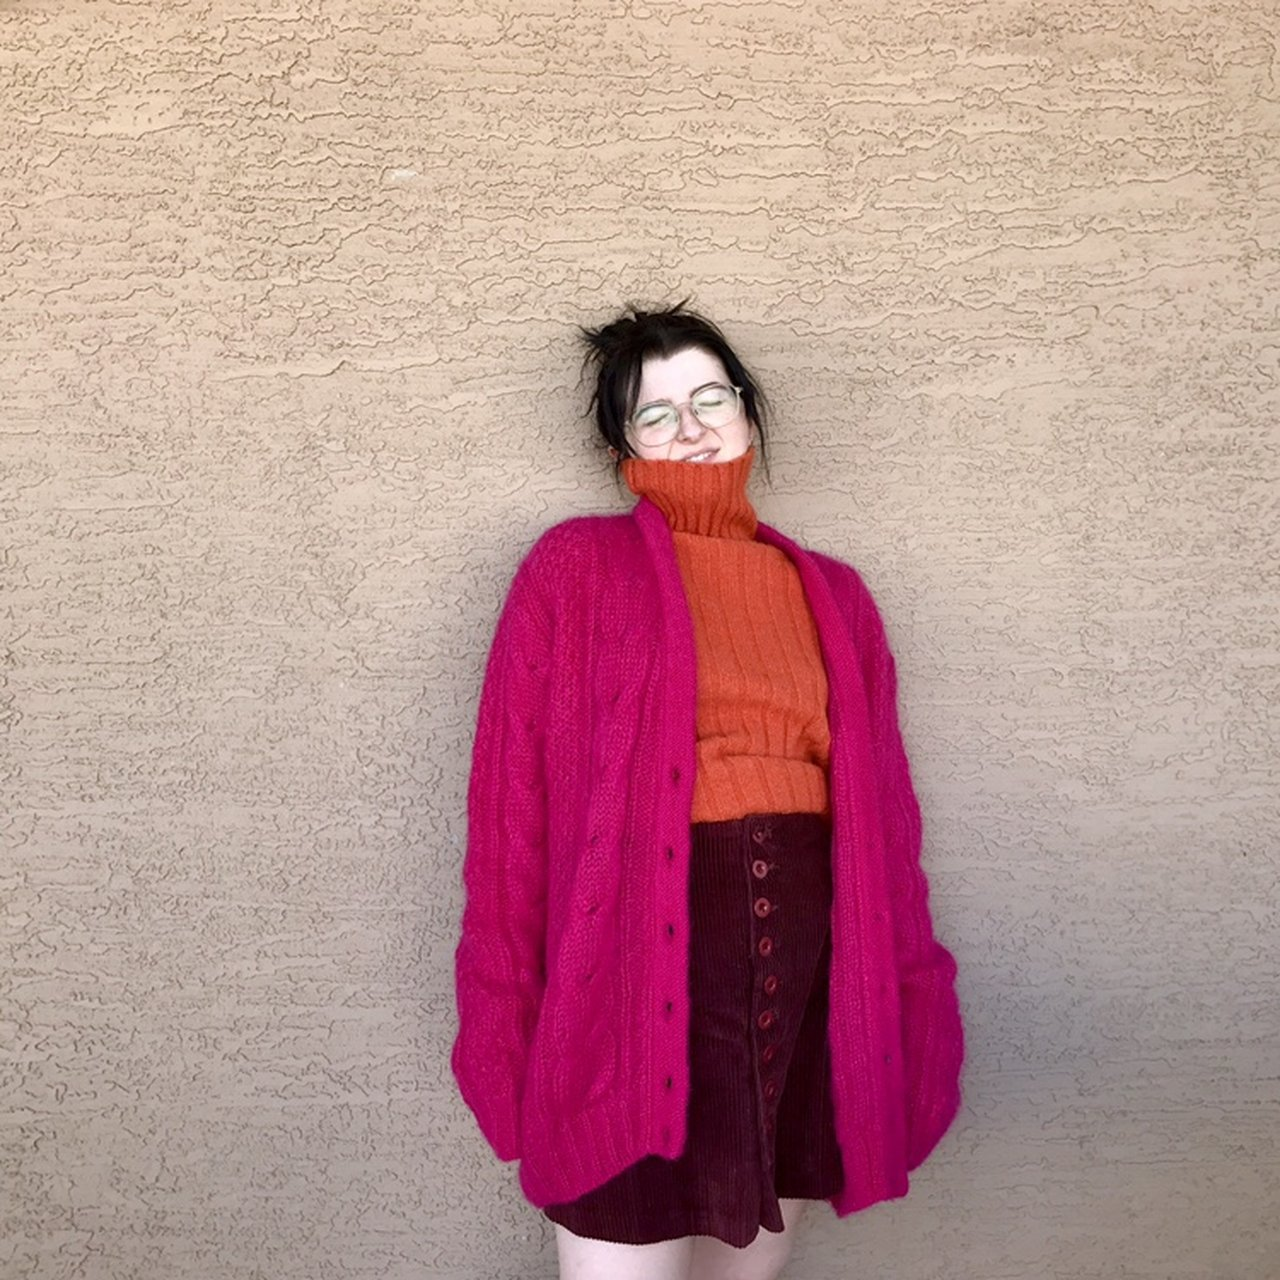 5a6366a85395 Vintage 80s fuschia knit mohair cardigan. My heart  3 the I - Depop